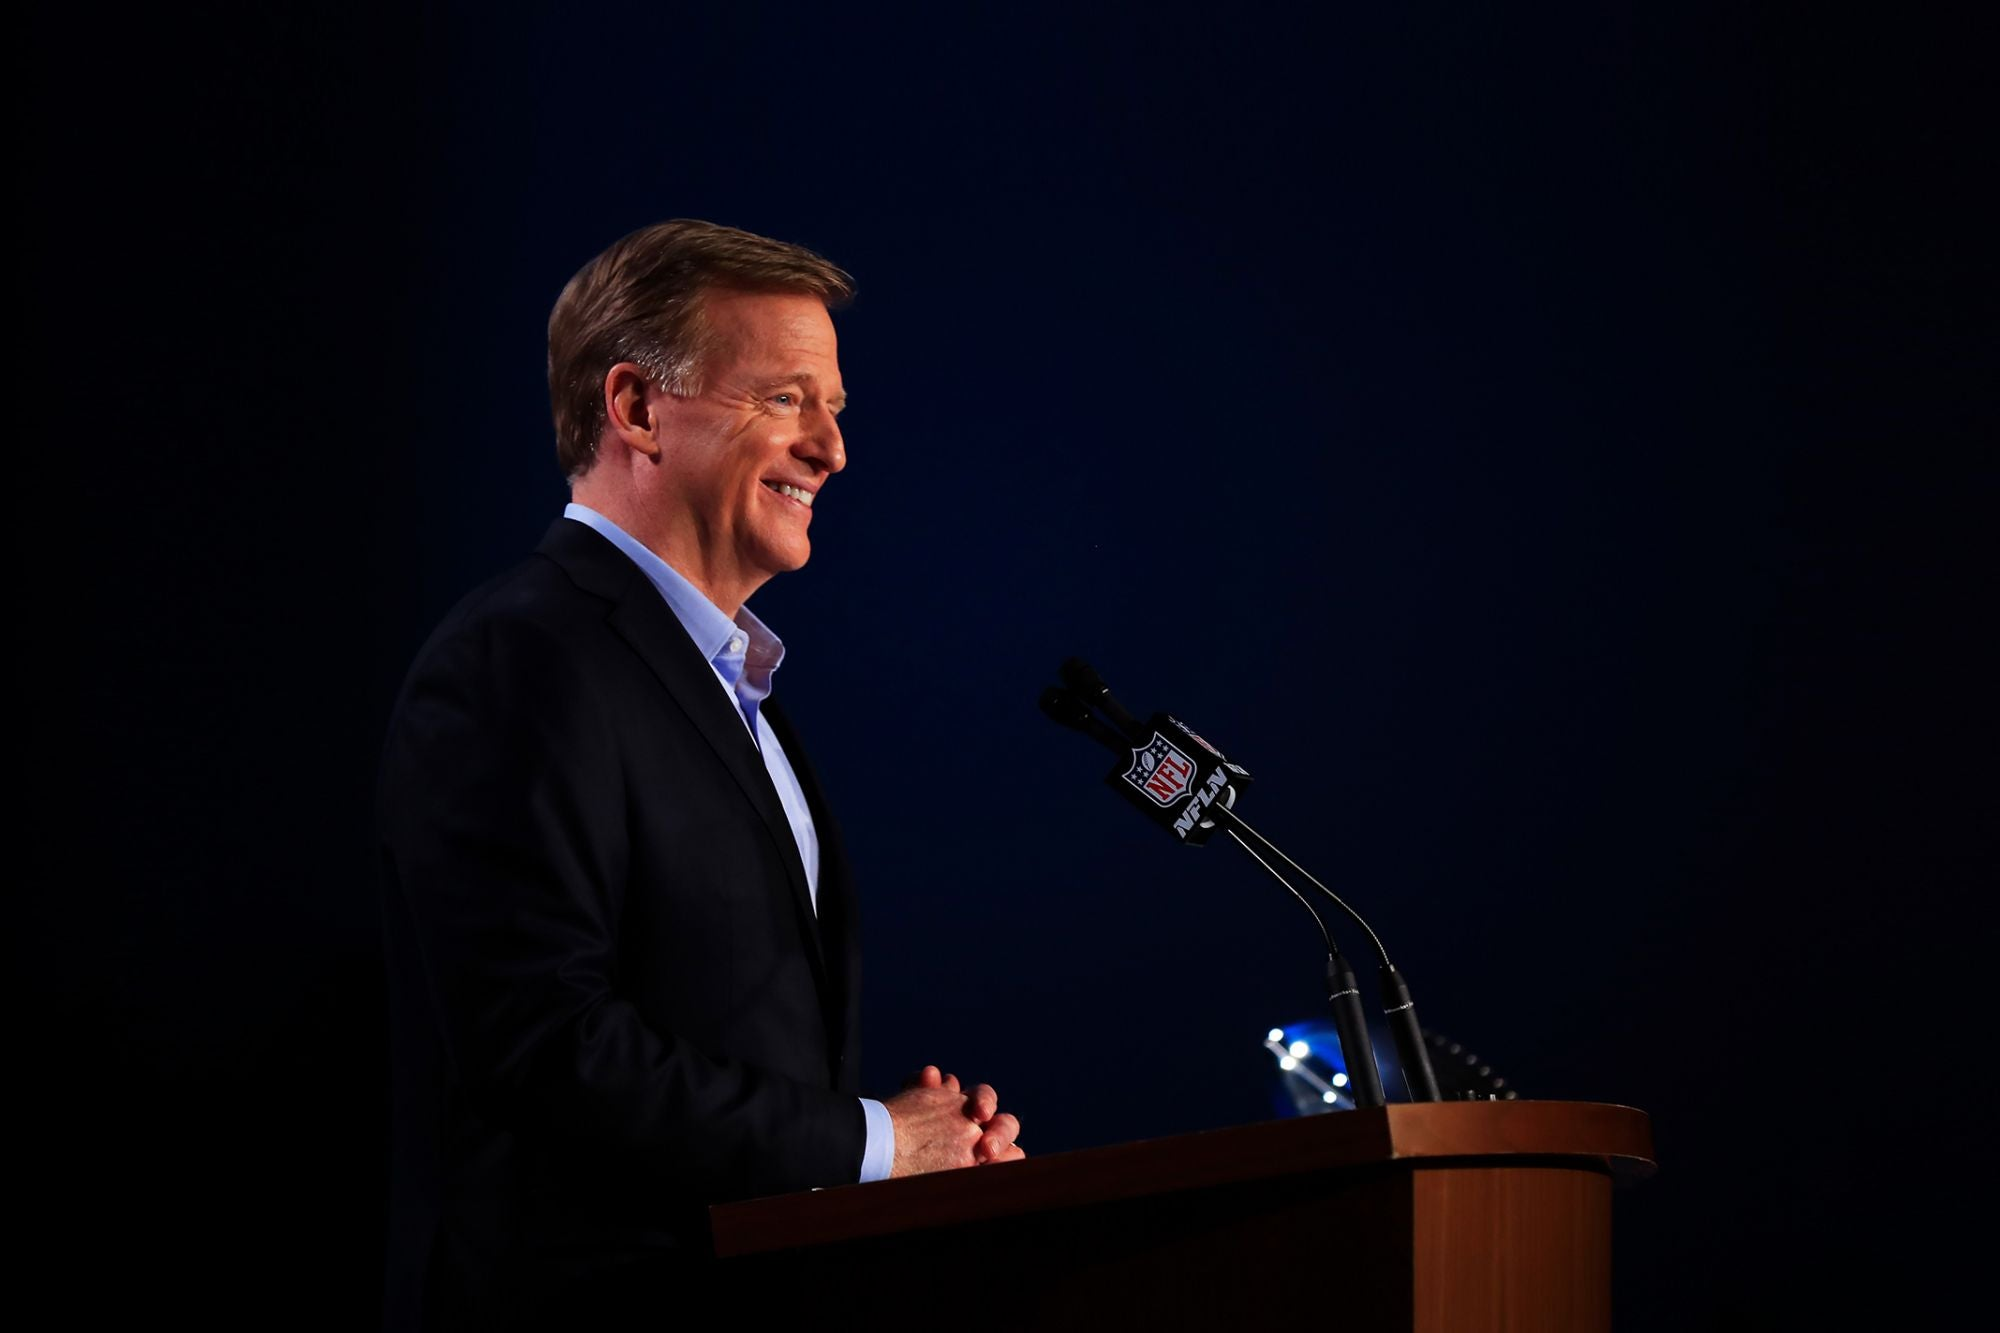 Lessons on Warmth in Leadership from NFL Commissioner Roger Goodell